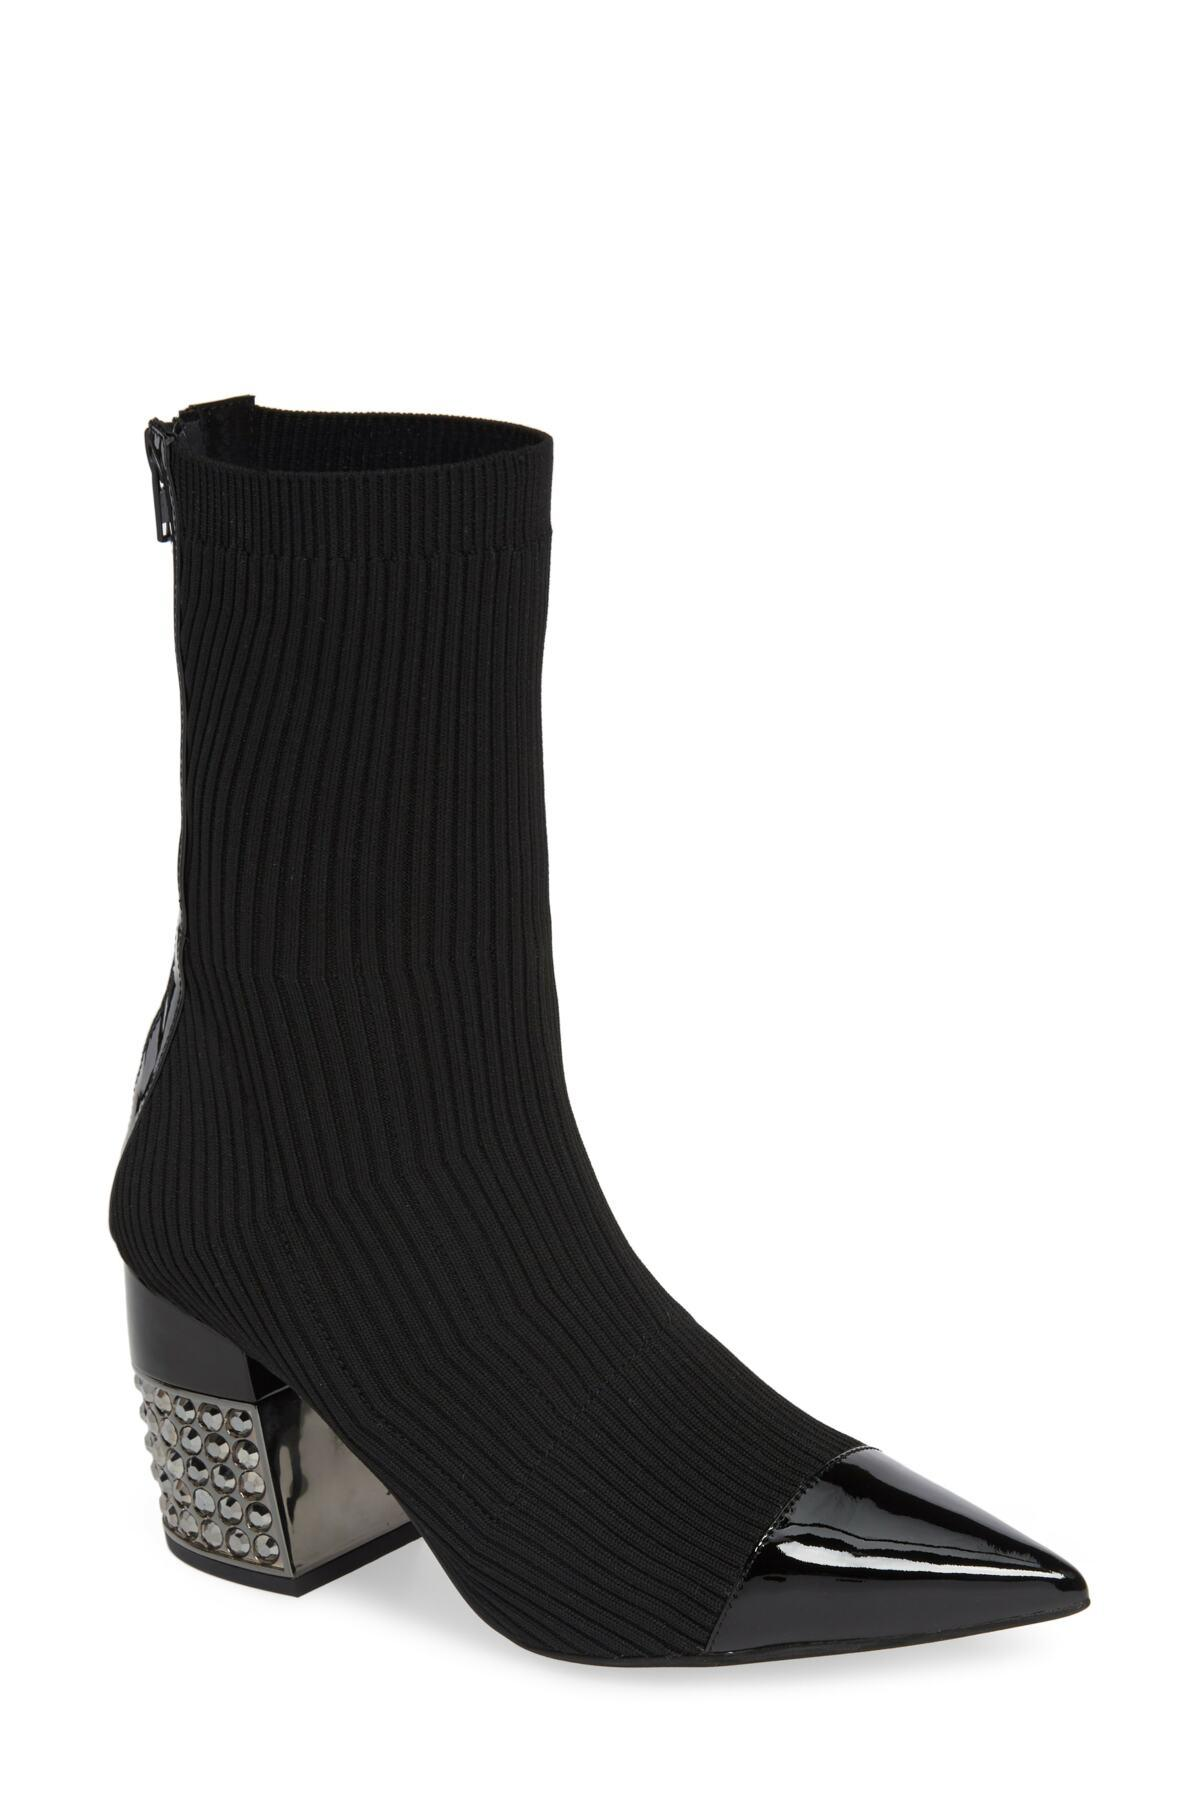 017c442ed74 Lyst - Jeffrey Campbell Fulfill Bootie (women) in Black - Save 61%